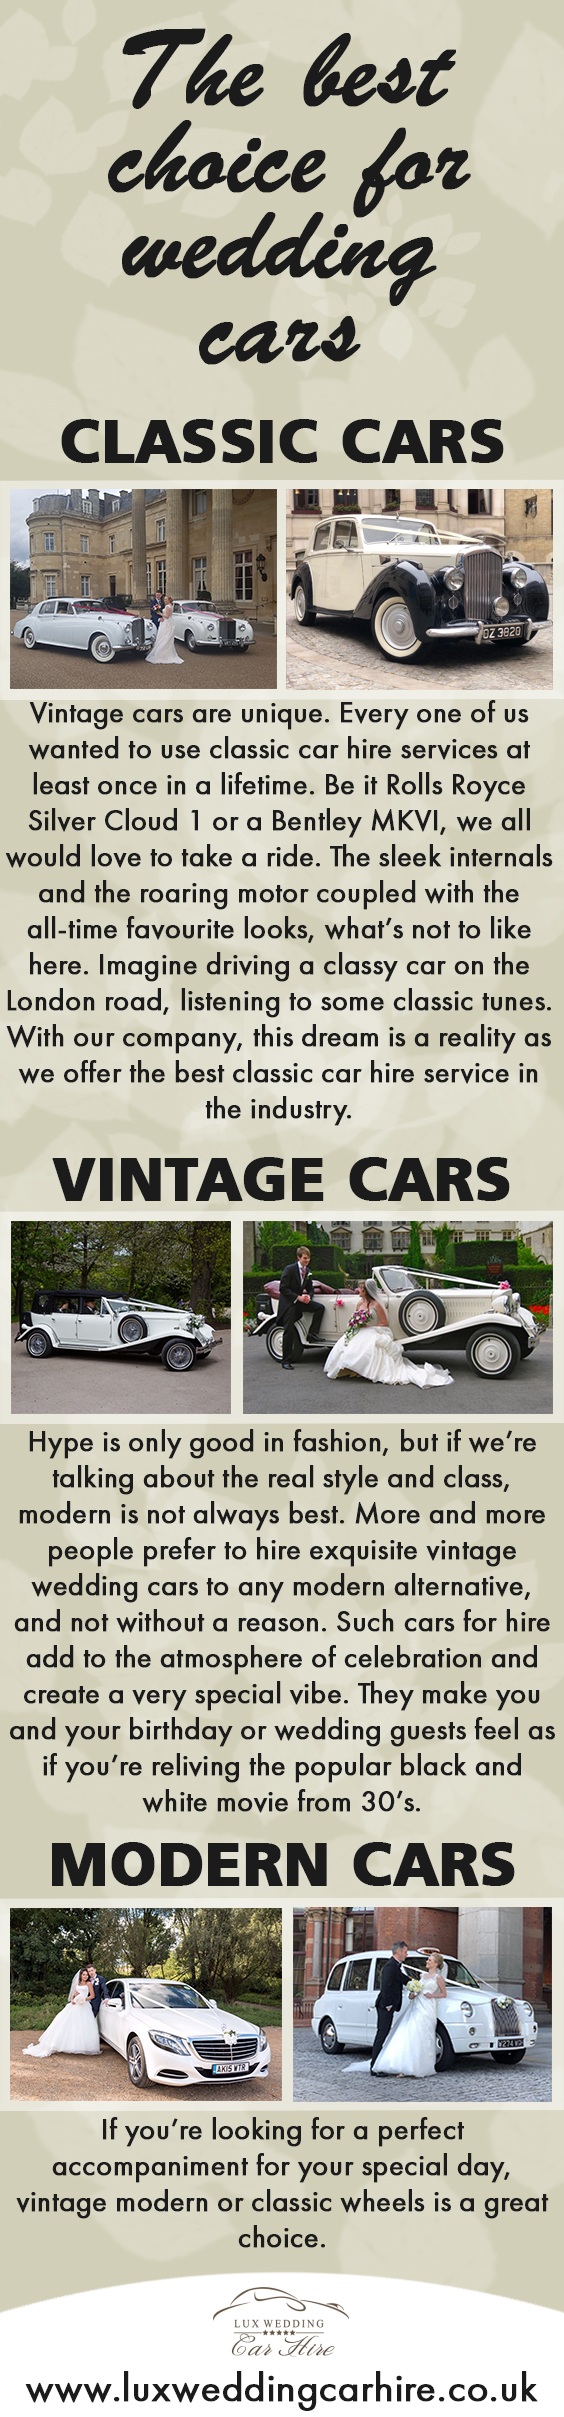 The Best Choice for Wedding Cars